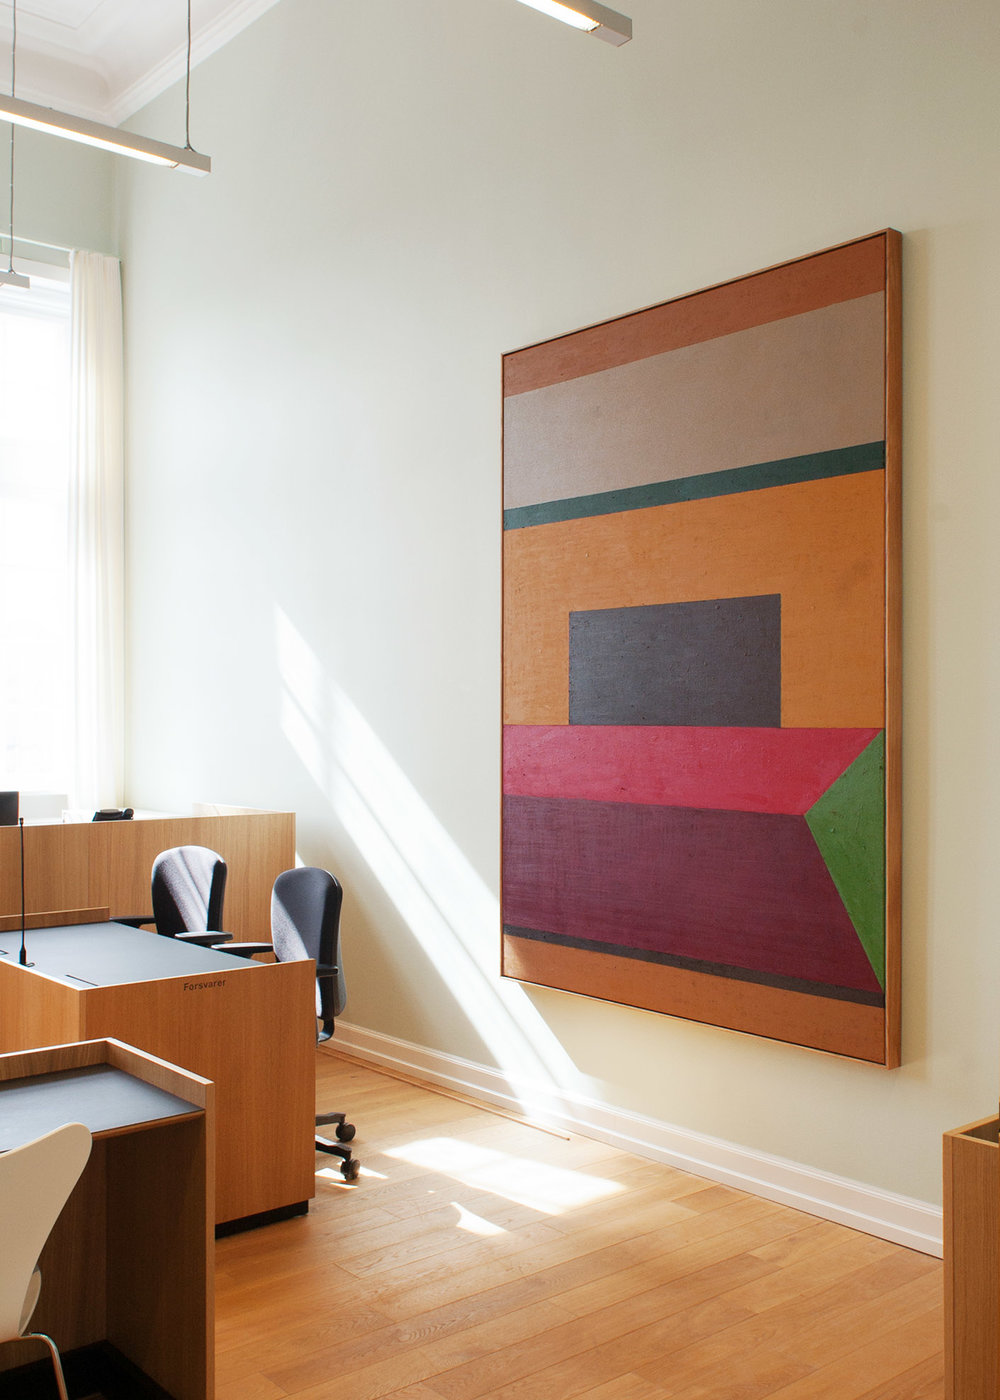 """Aarhus Courthouse, Aarhus, Denmark, 2018 (""""In Time"""", acrylic and oilstick on canvas, 243 x 173 cm)"""